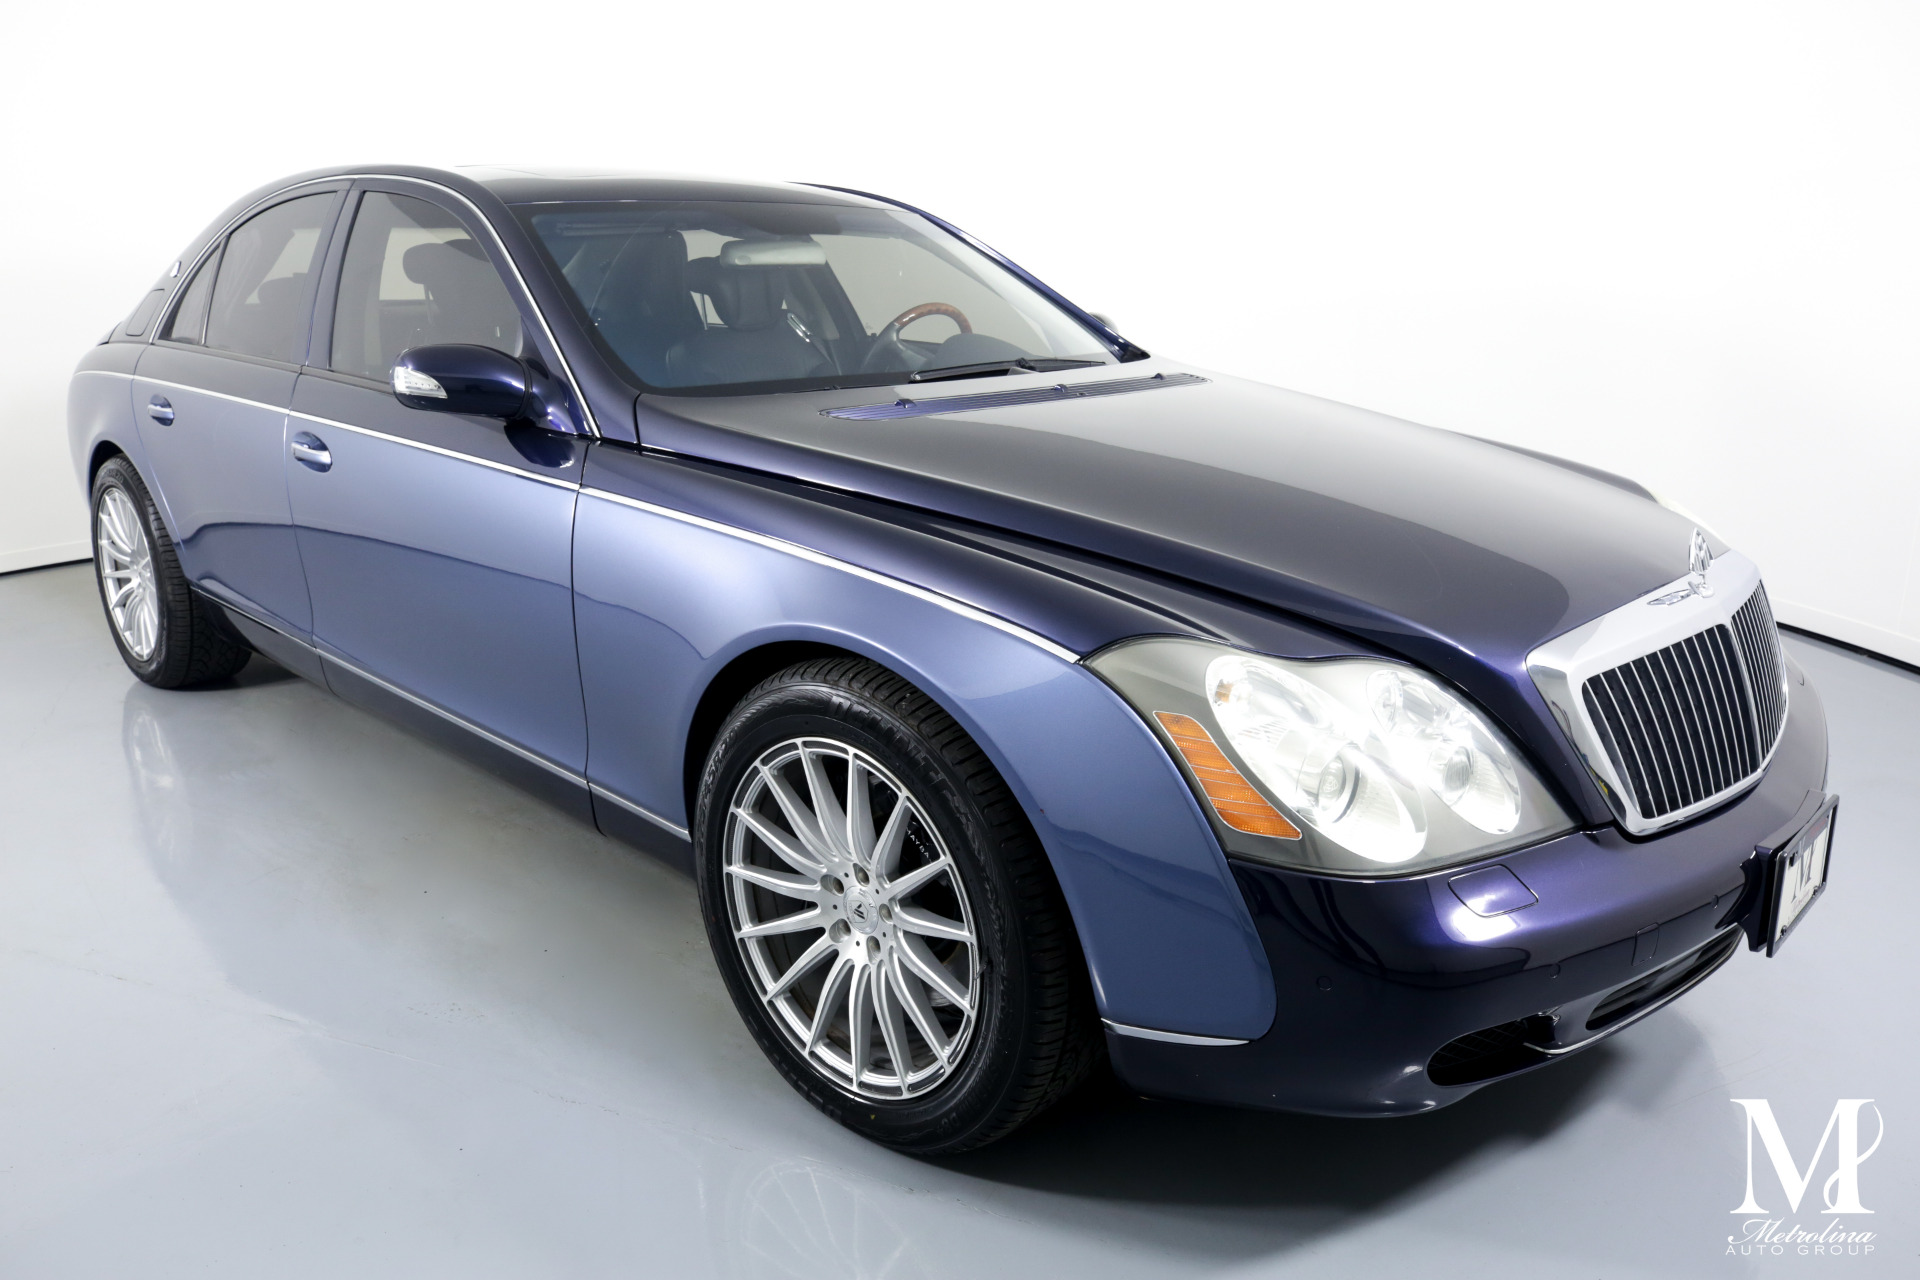 Used 2004 Maybach 57 for sale Sold at Metrolina Auto Group in Charlotte NC 28217 - 2